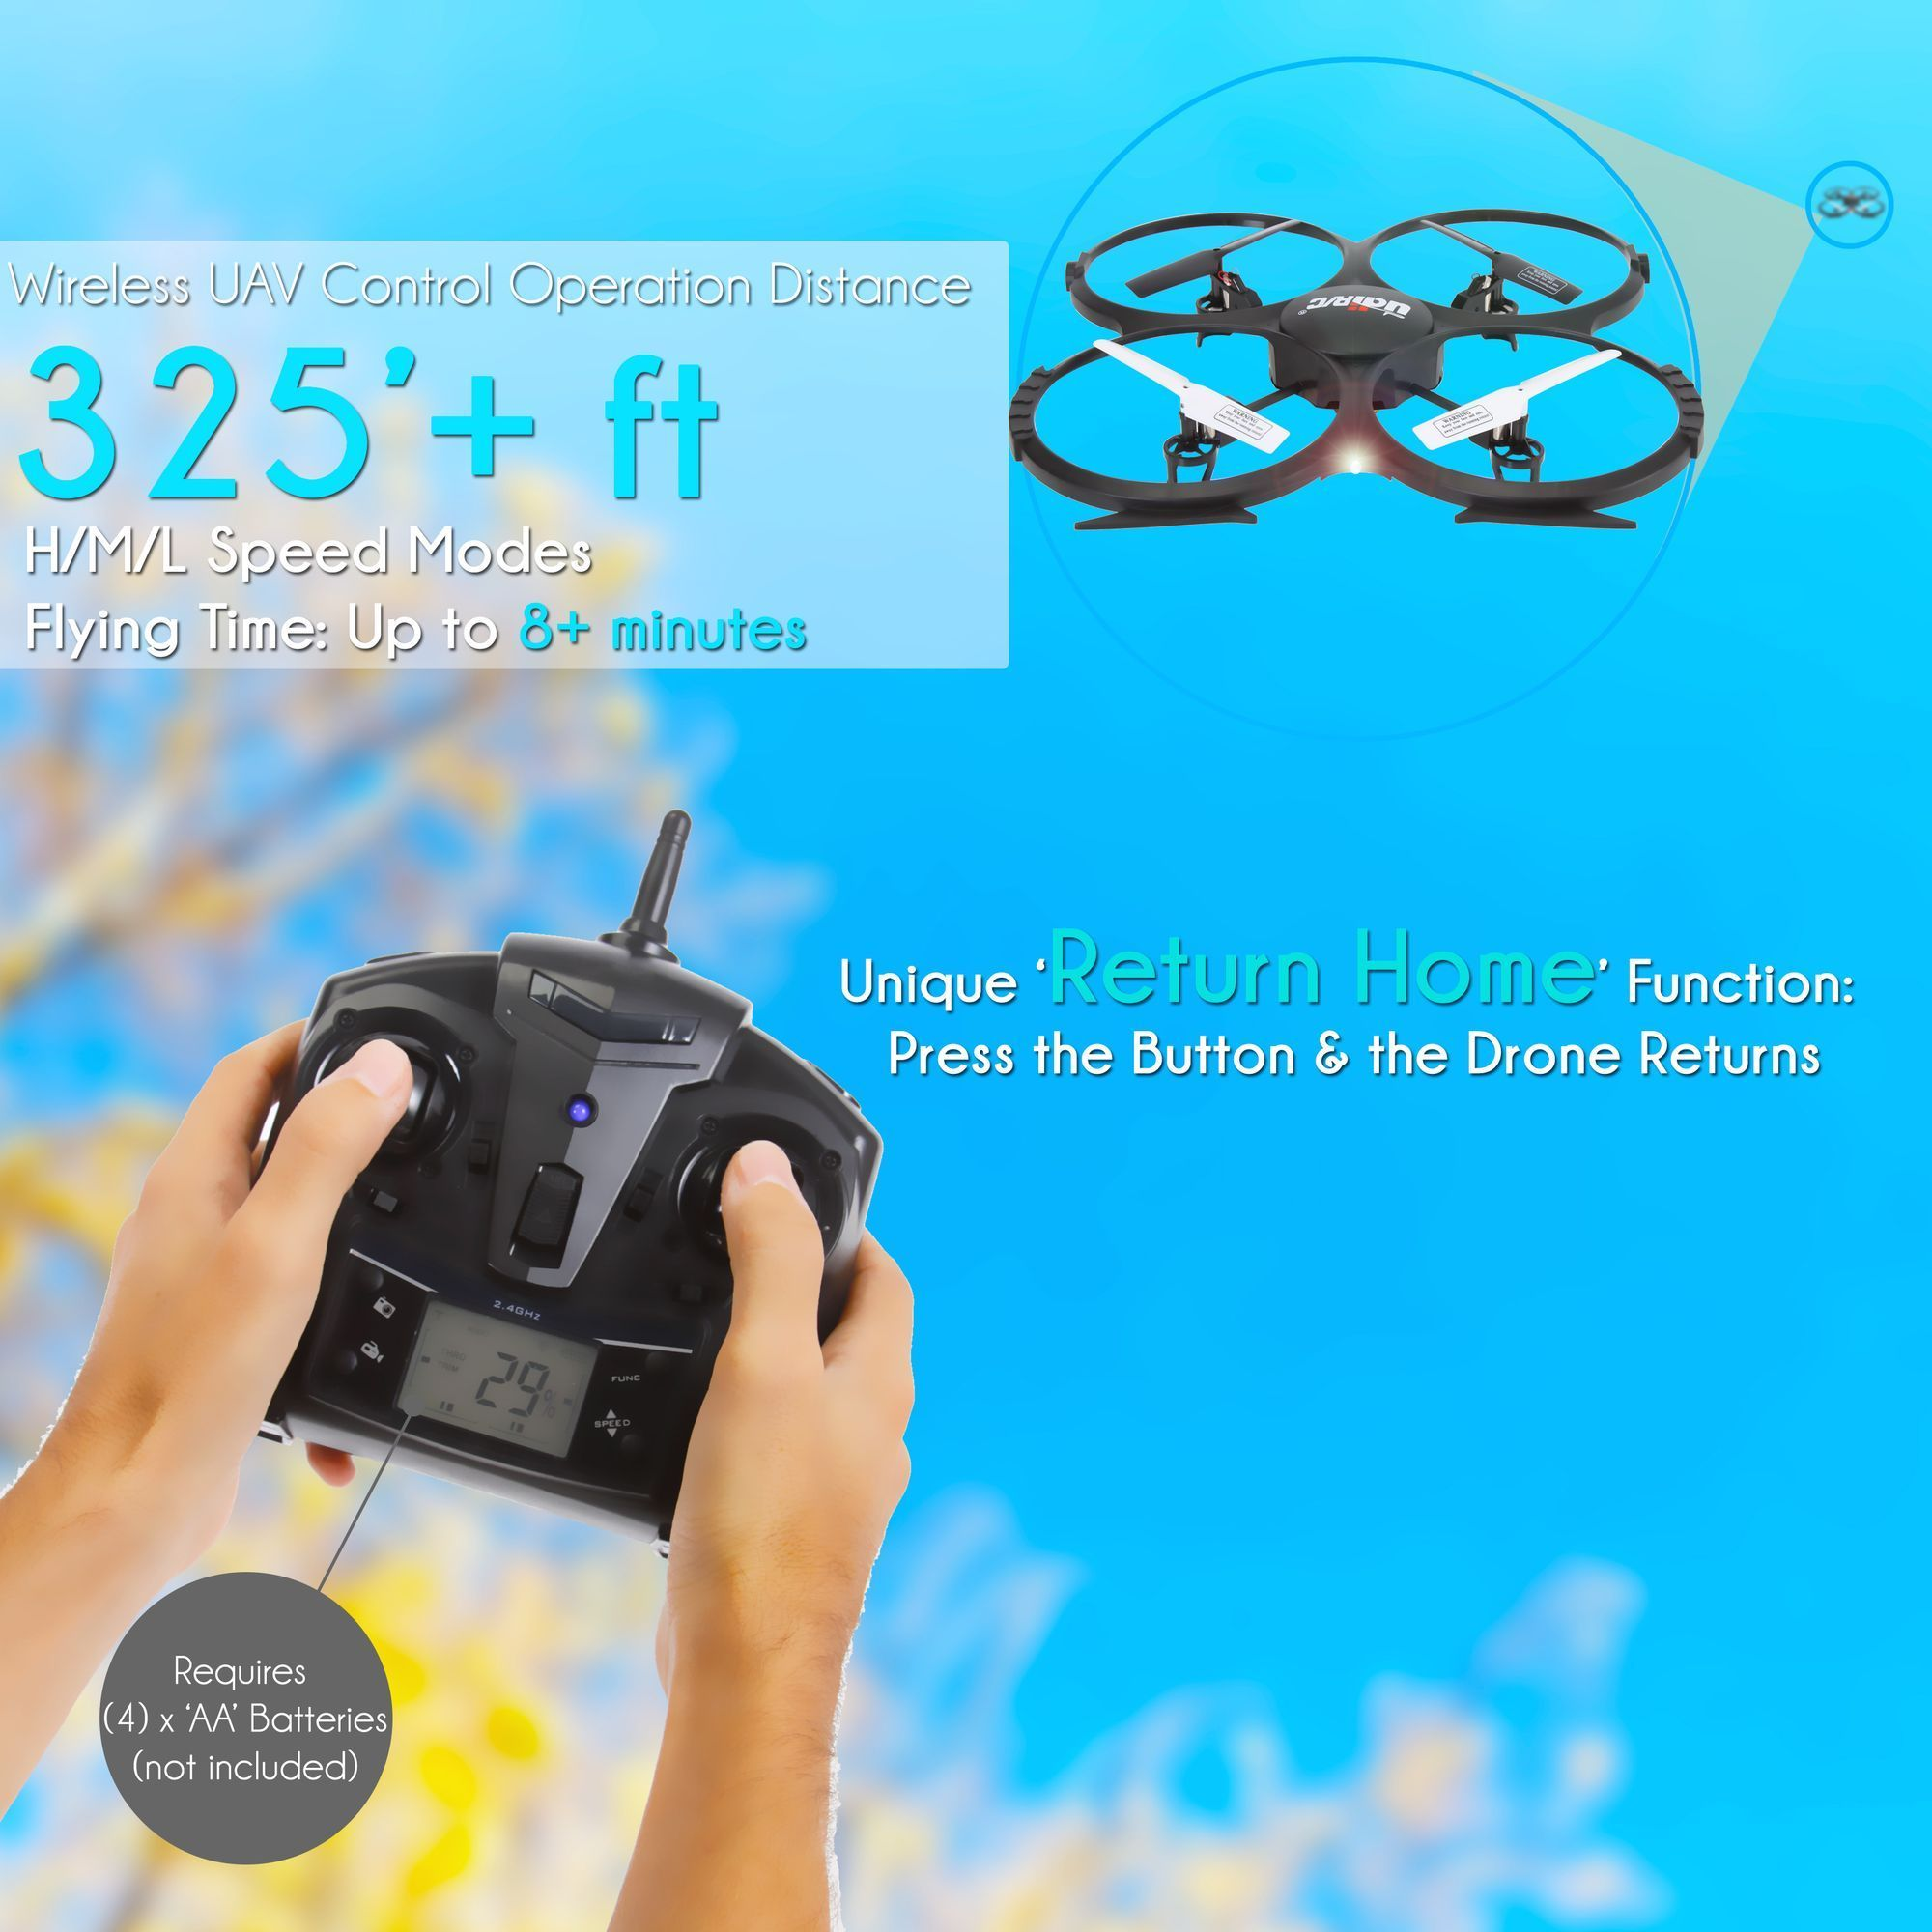 SereneLife Wireless RC Drone, HD Camera + Video Recording (SLDR18HD)